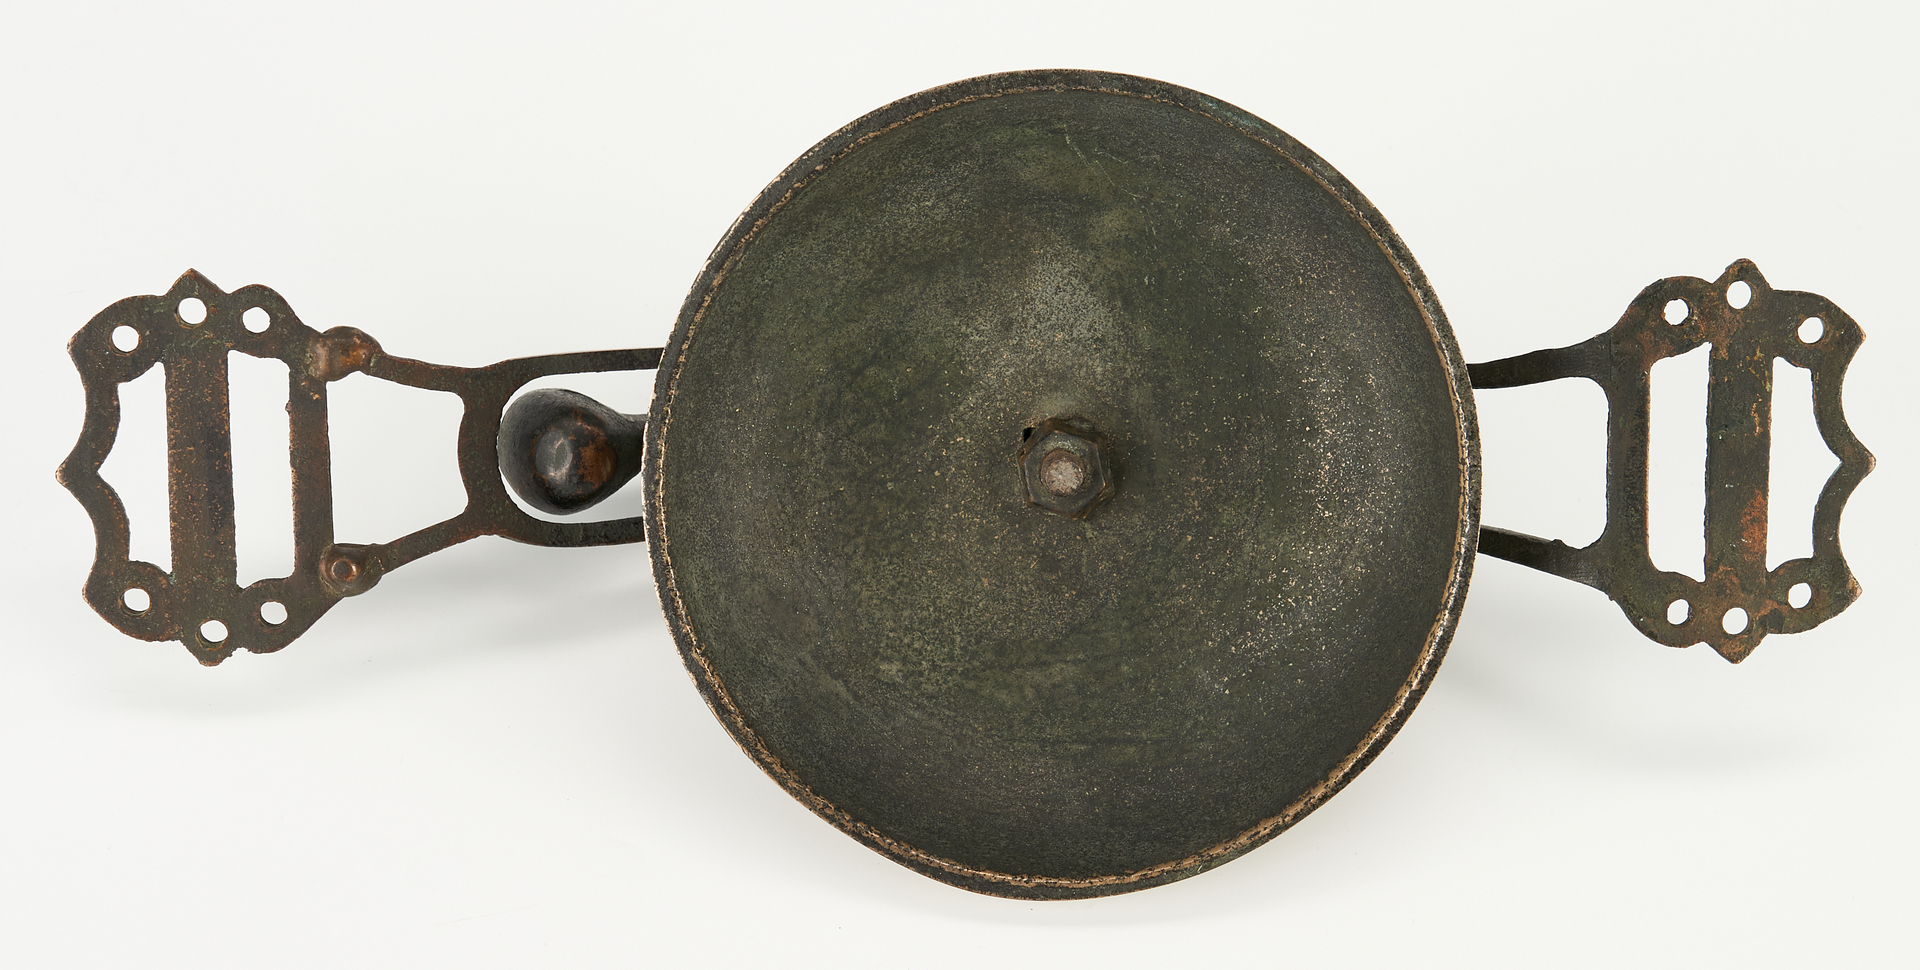 Lot 853: 3 Bells Including Trolley, St. Louis, & Chicago World's Fair